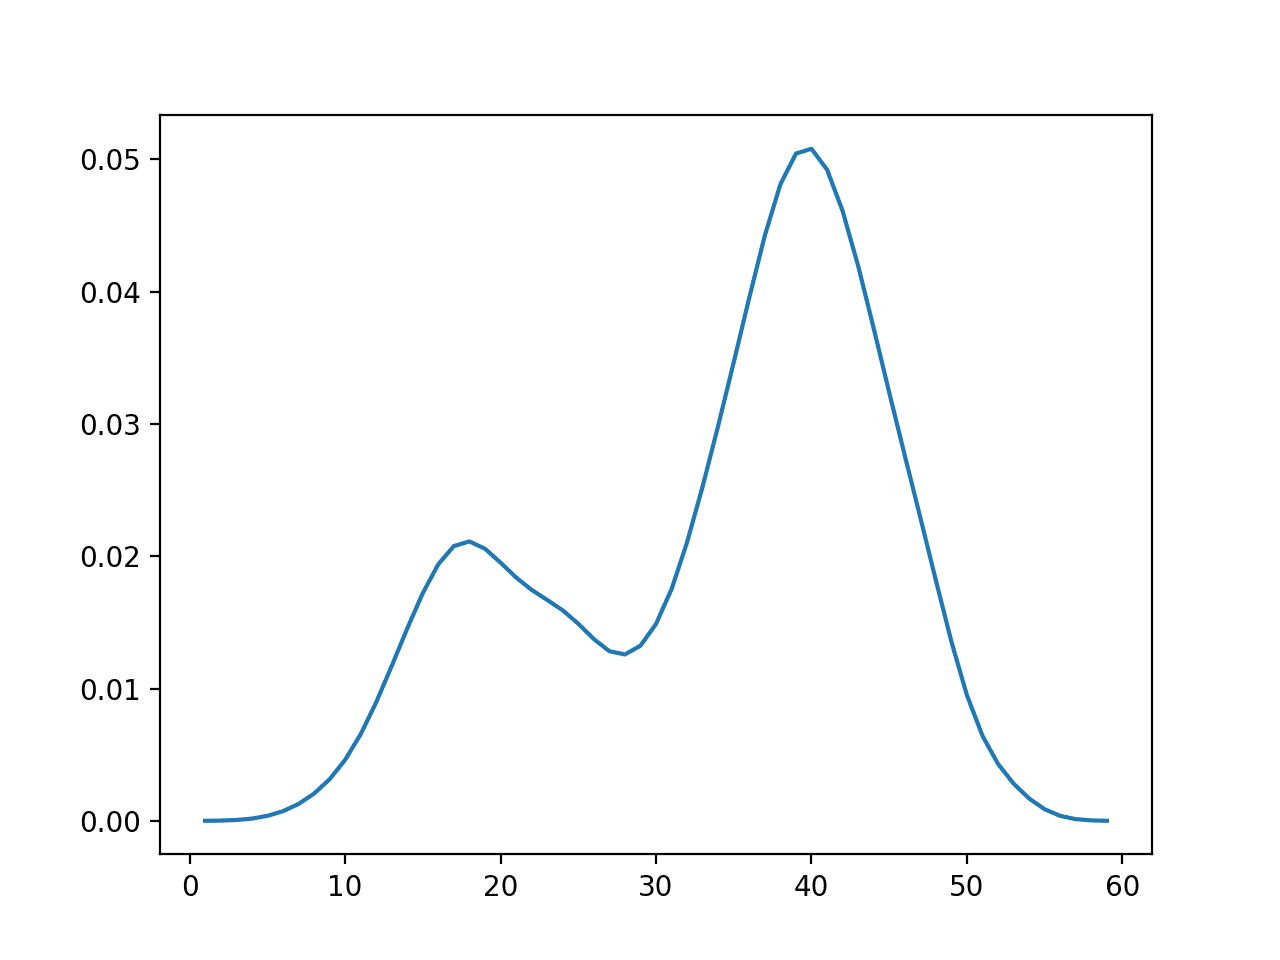 Empirical Probability Density Function for the Bimodal Data Sample